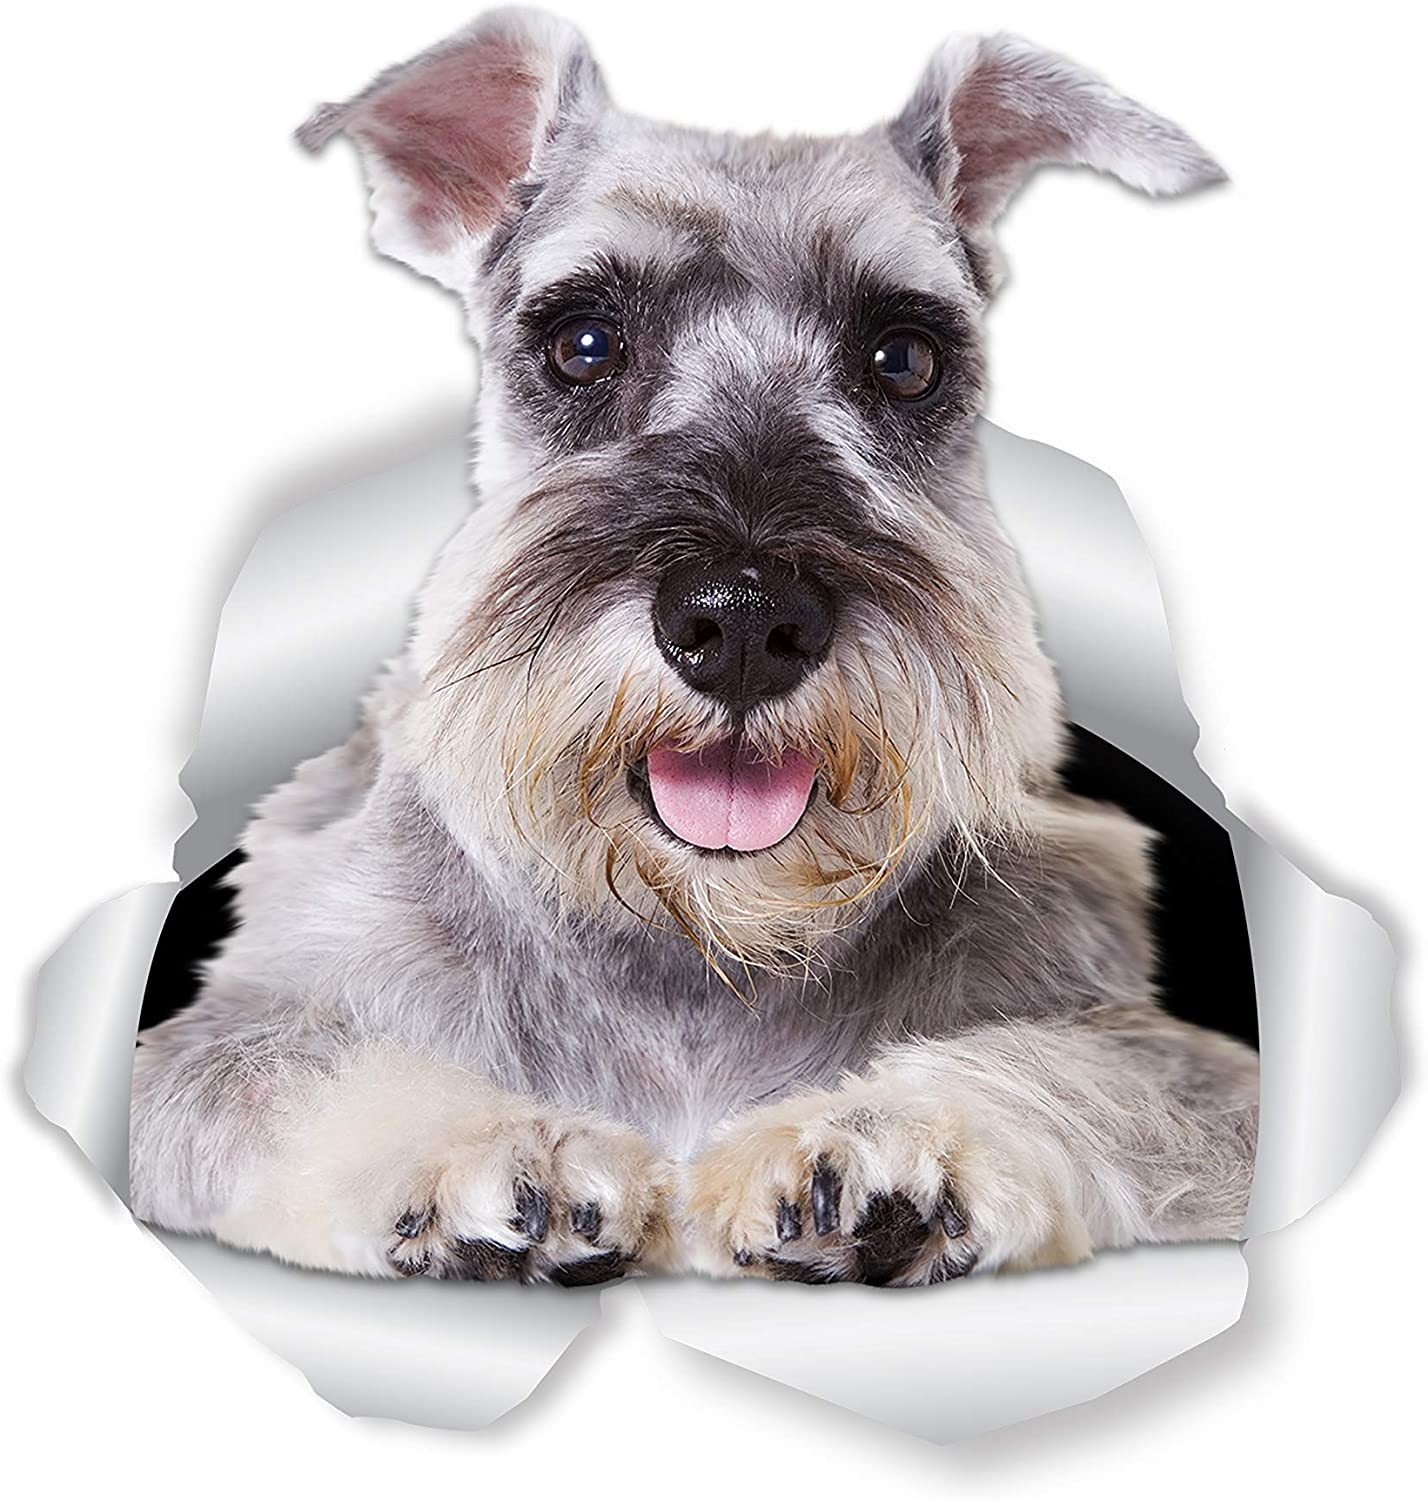 Winston & Bear Super Schnauzer Dog Wall Decals - 2 Pack - Schnauzer 3D Sticker Decals for Walls, Cars, Toilet and More - Retail Packaged Gray Schnauzer Gifts